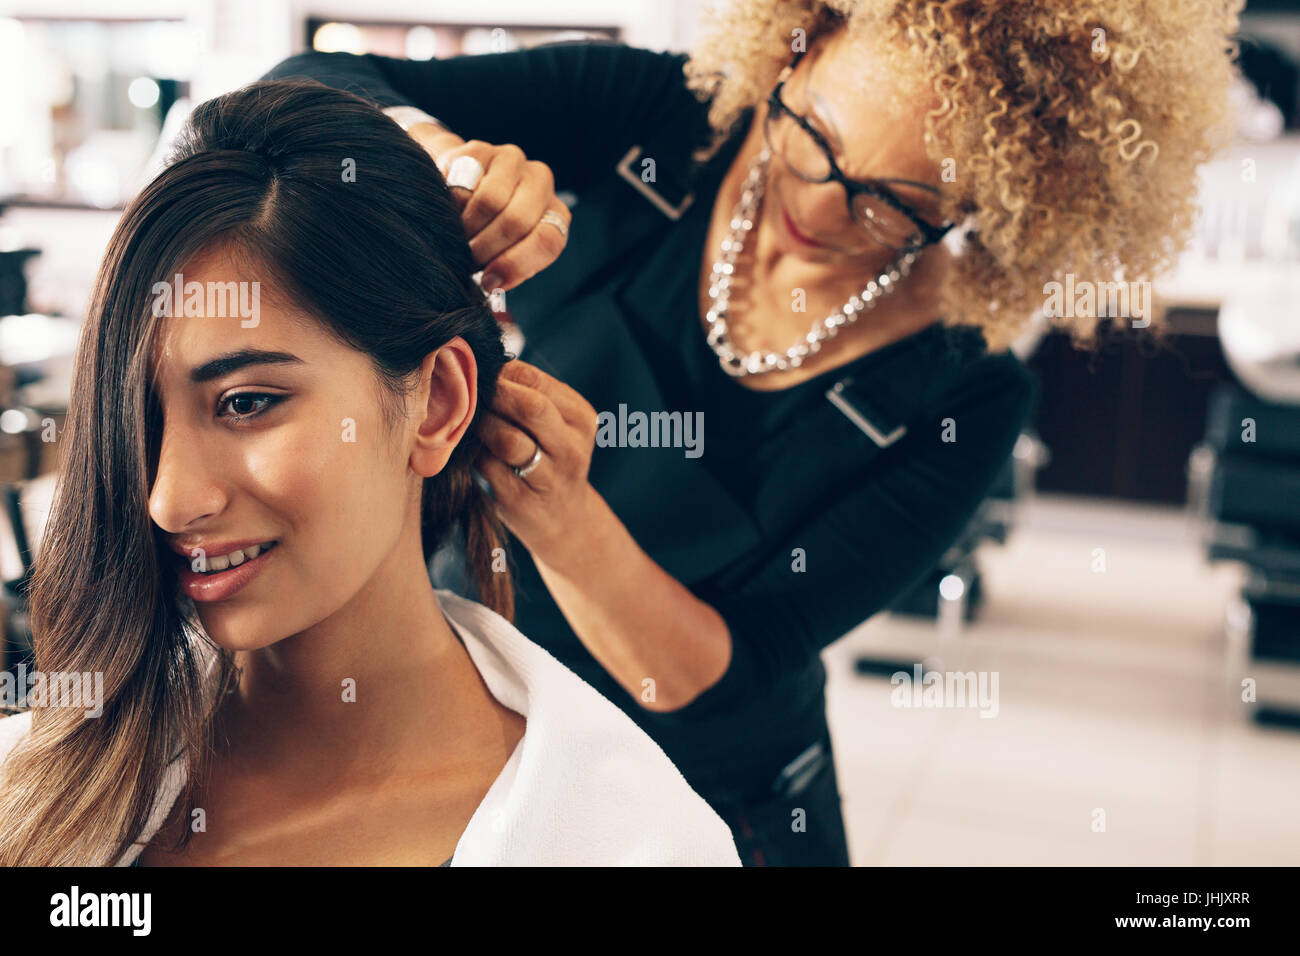 Closeup of a woman getting a stylish hairdo done at salon. Professional hair stylish pinning up the hair in stylish - Stock Image